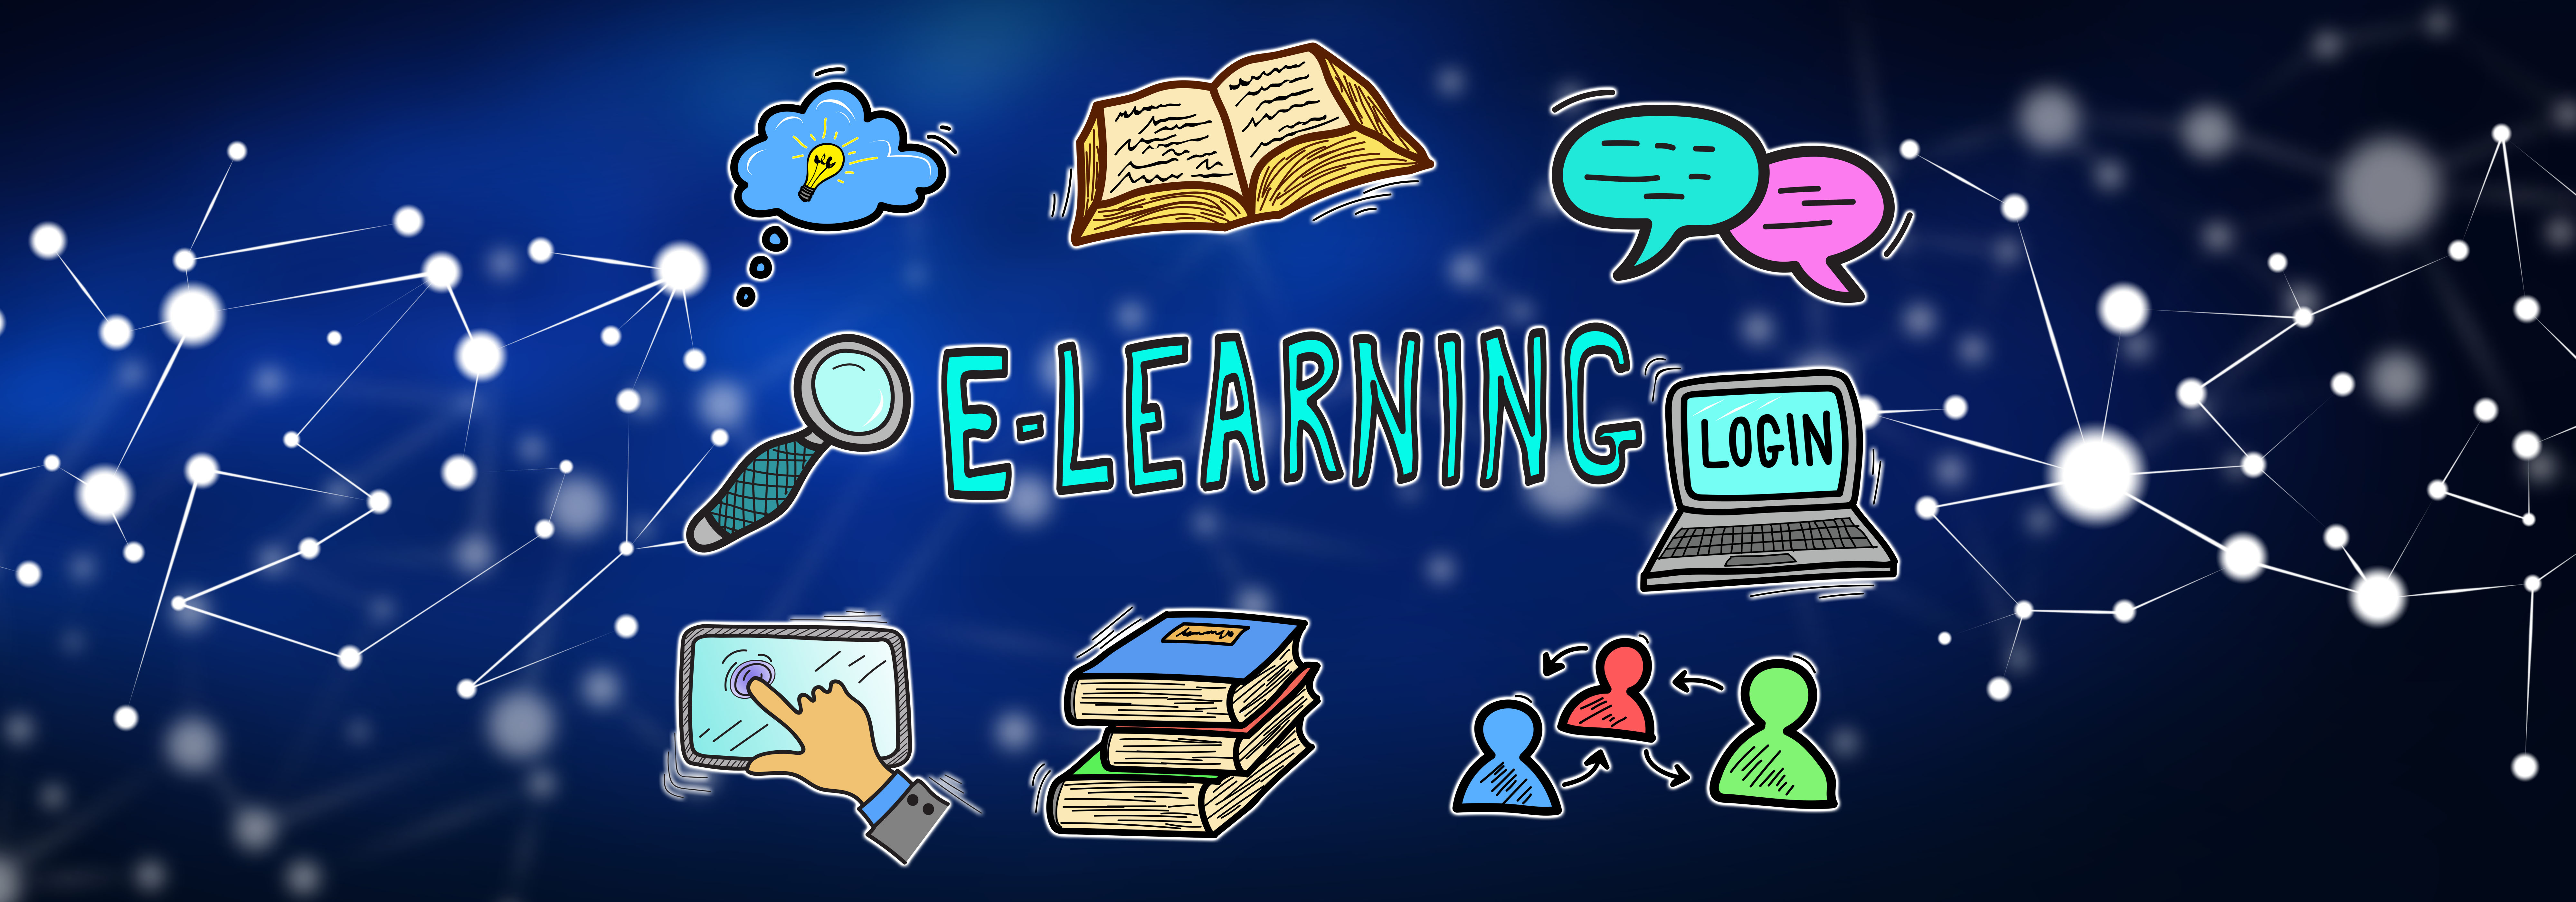 elearning_ceLearning